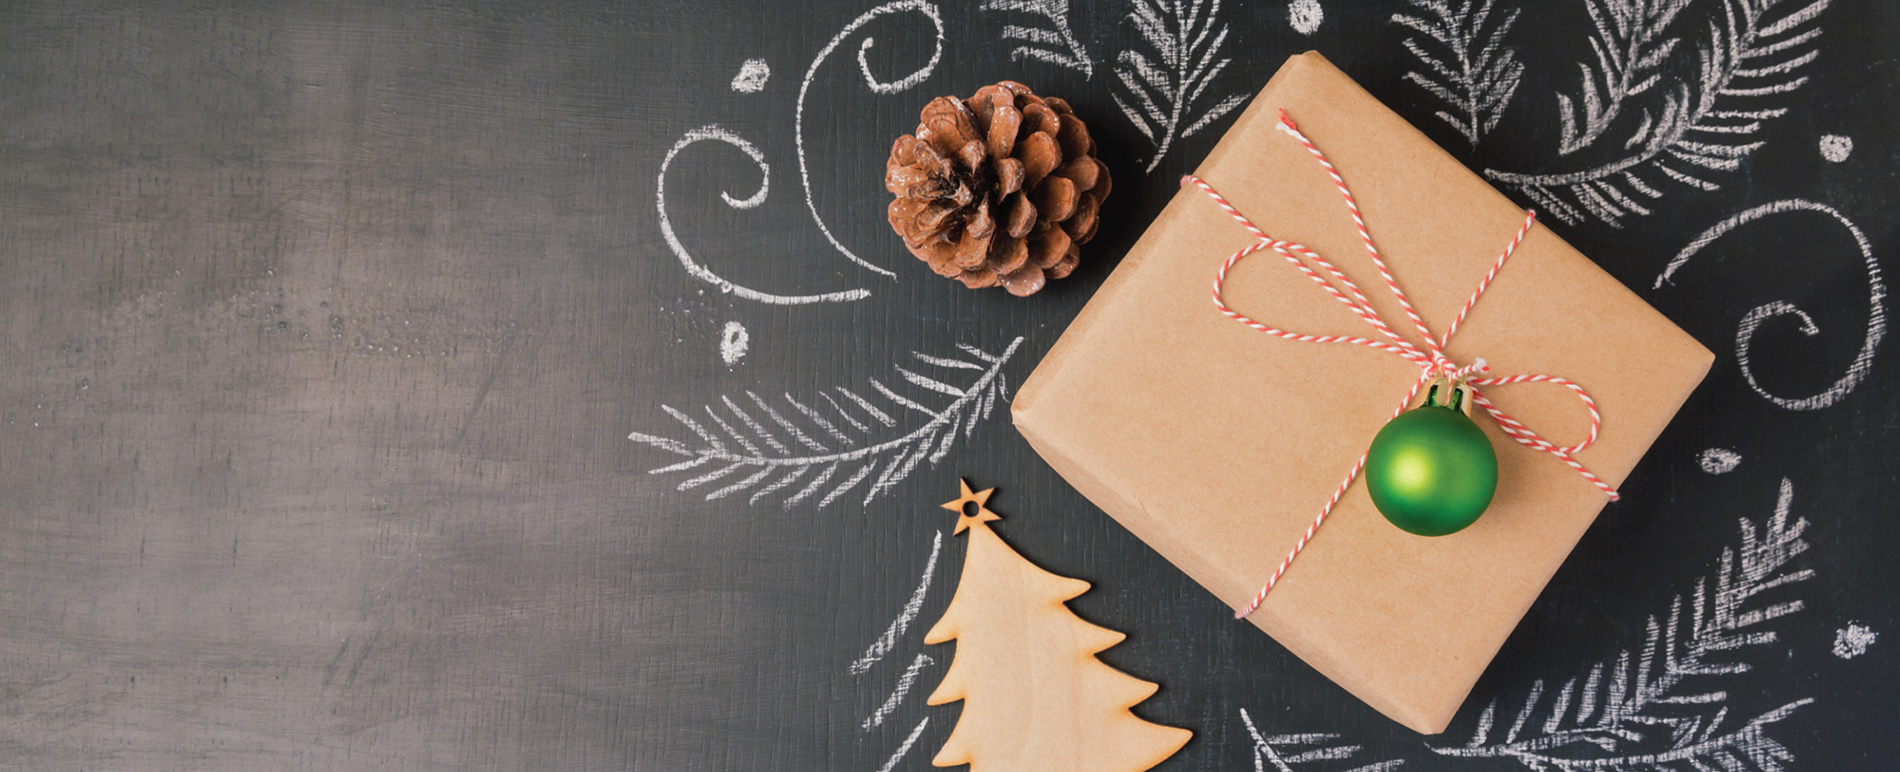 gift, Christmas cookie, pine cone and chalk designs laid out on a chalkboard